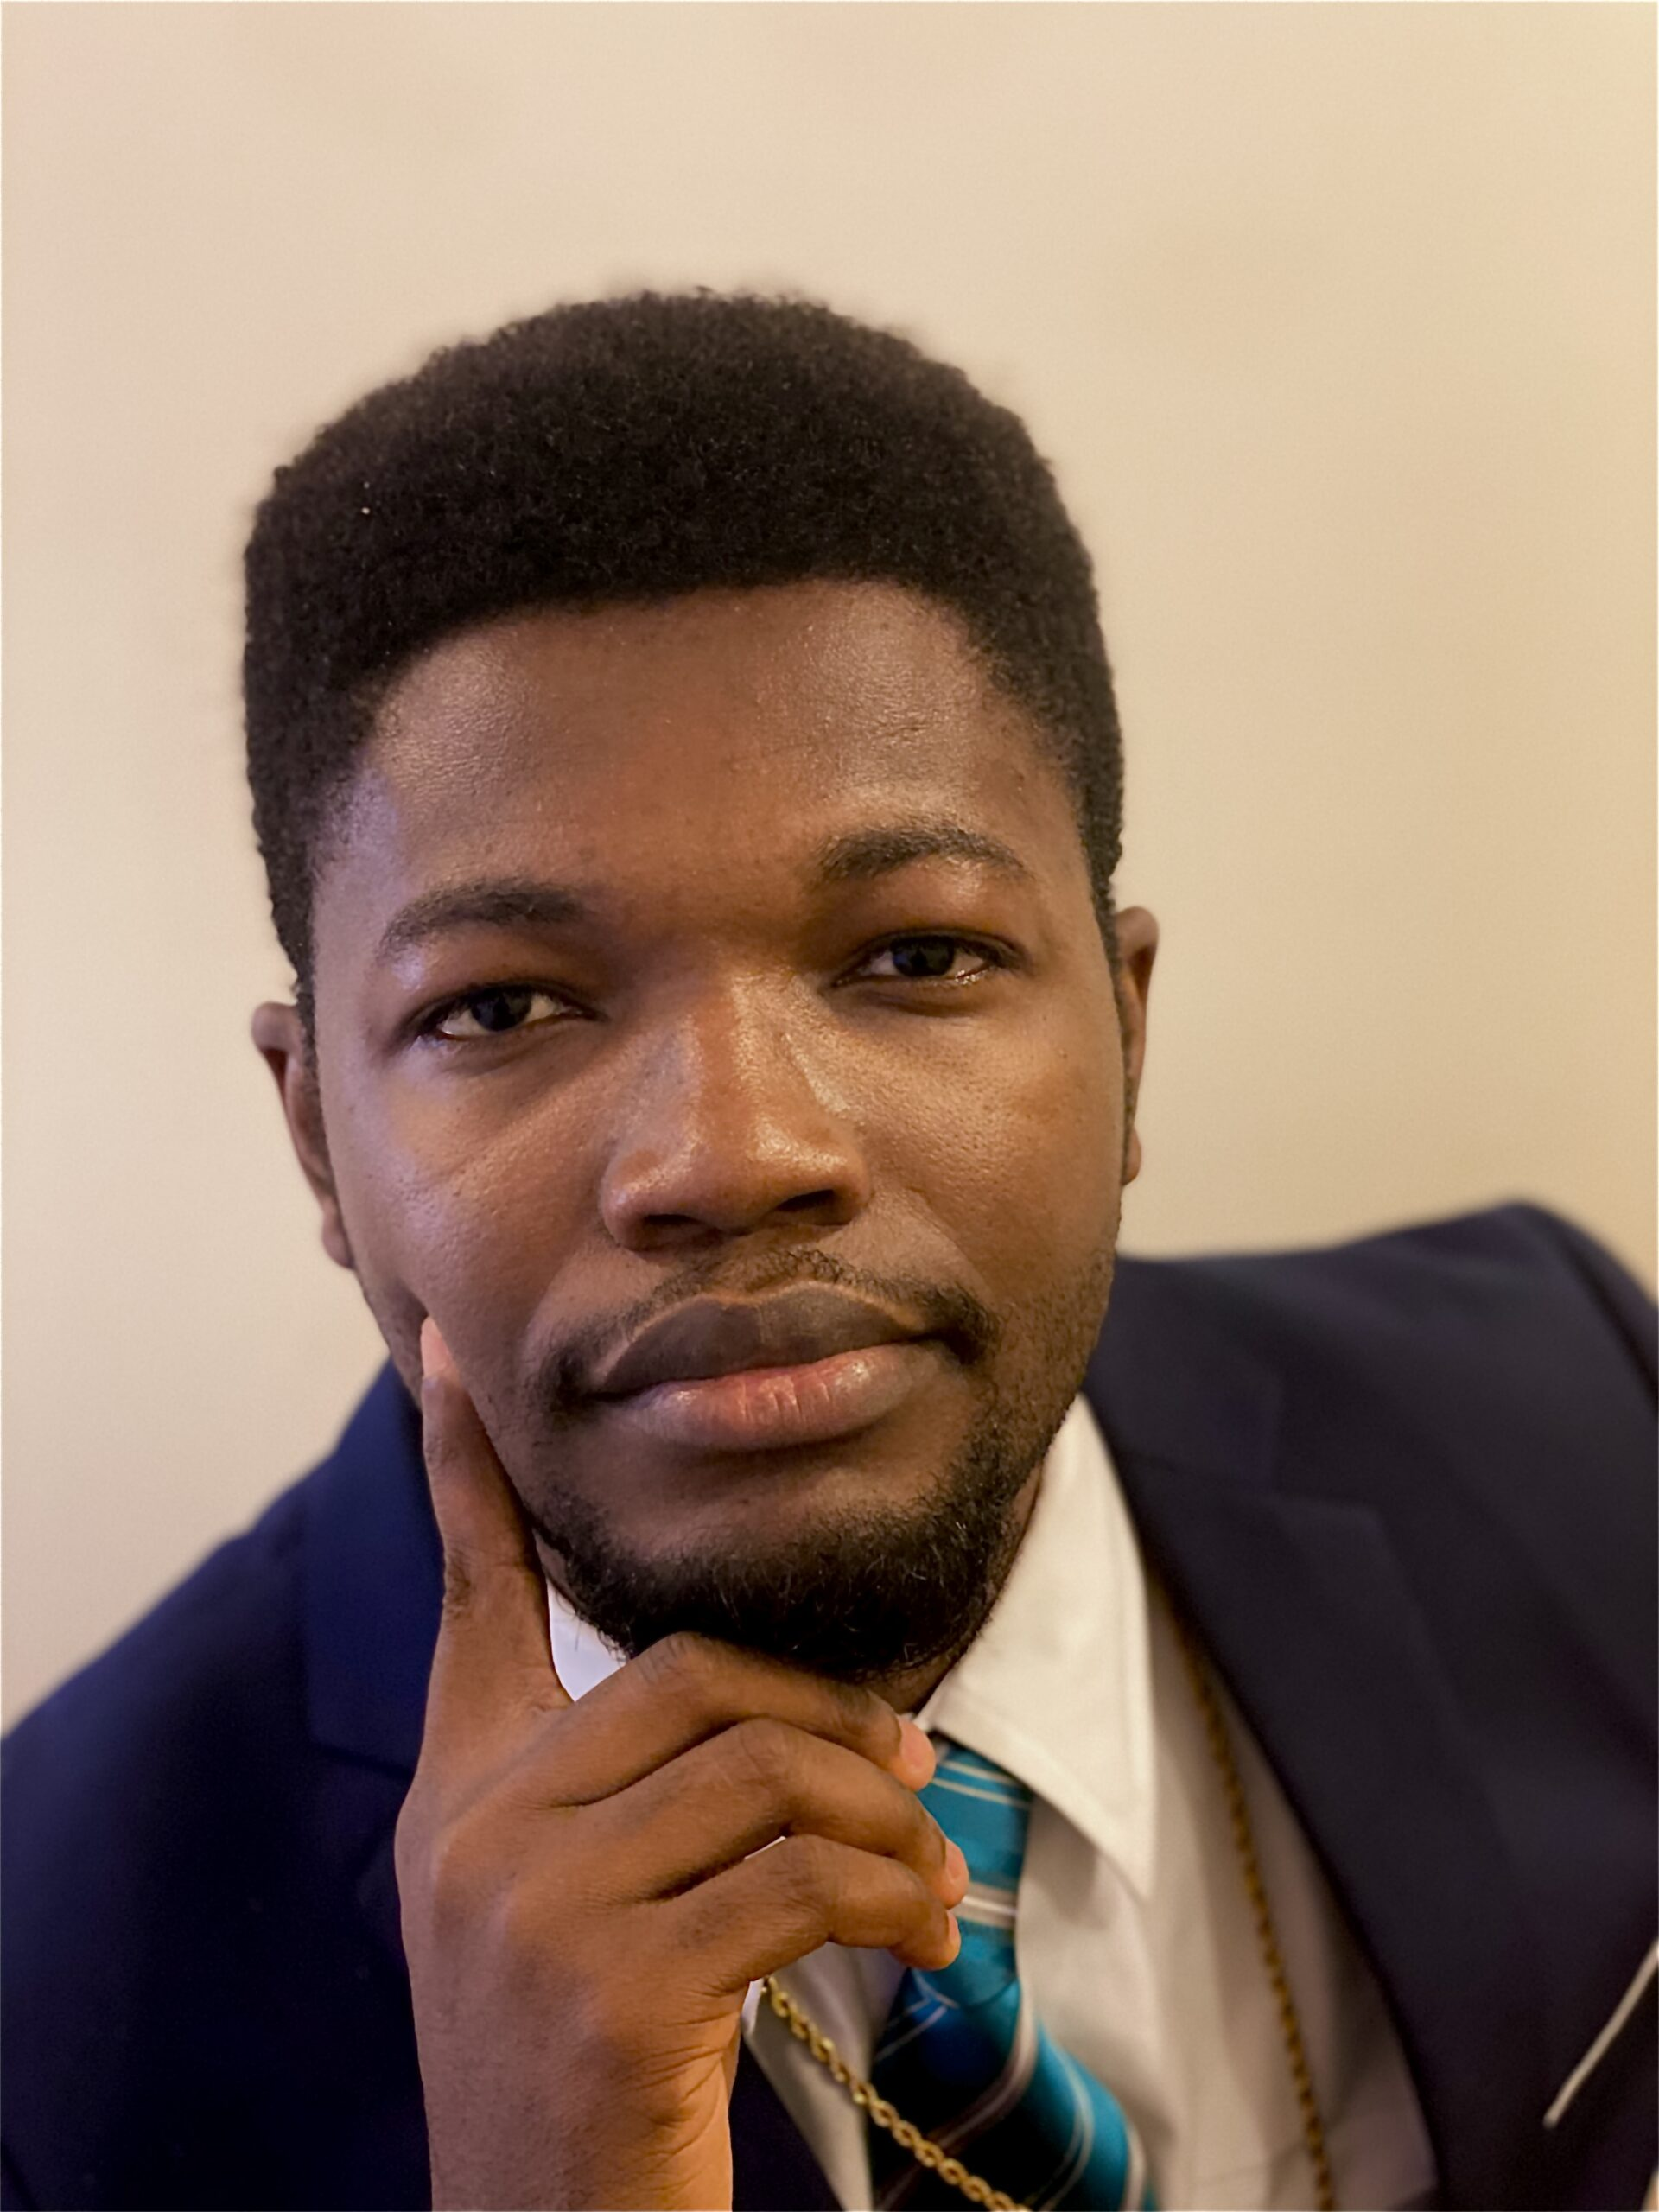 Introducing Cultural Dynamism in Gospel Music: Multitalented Christian Gospel Singer and Songwriter Solomon Ennin (Rhema Blessed) Makes a Definitive Statement with Latest Single